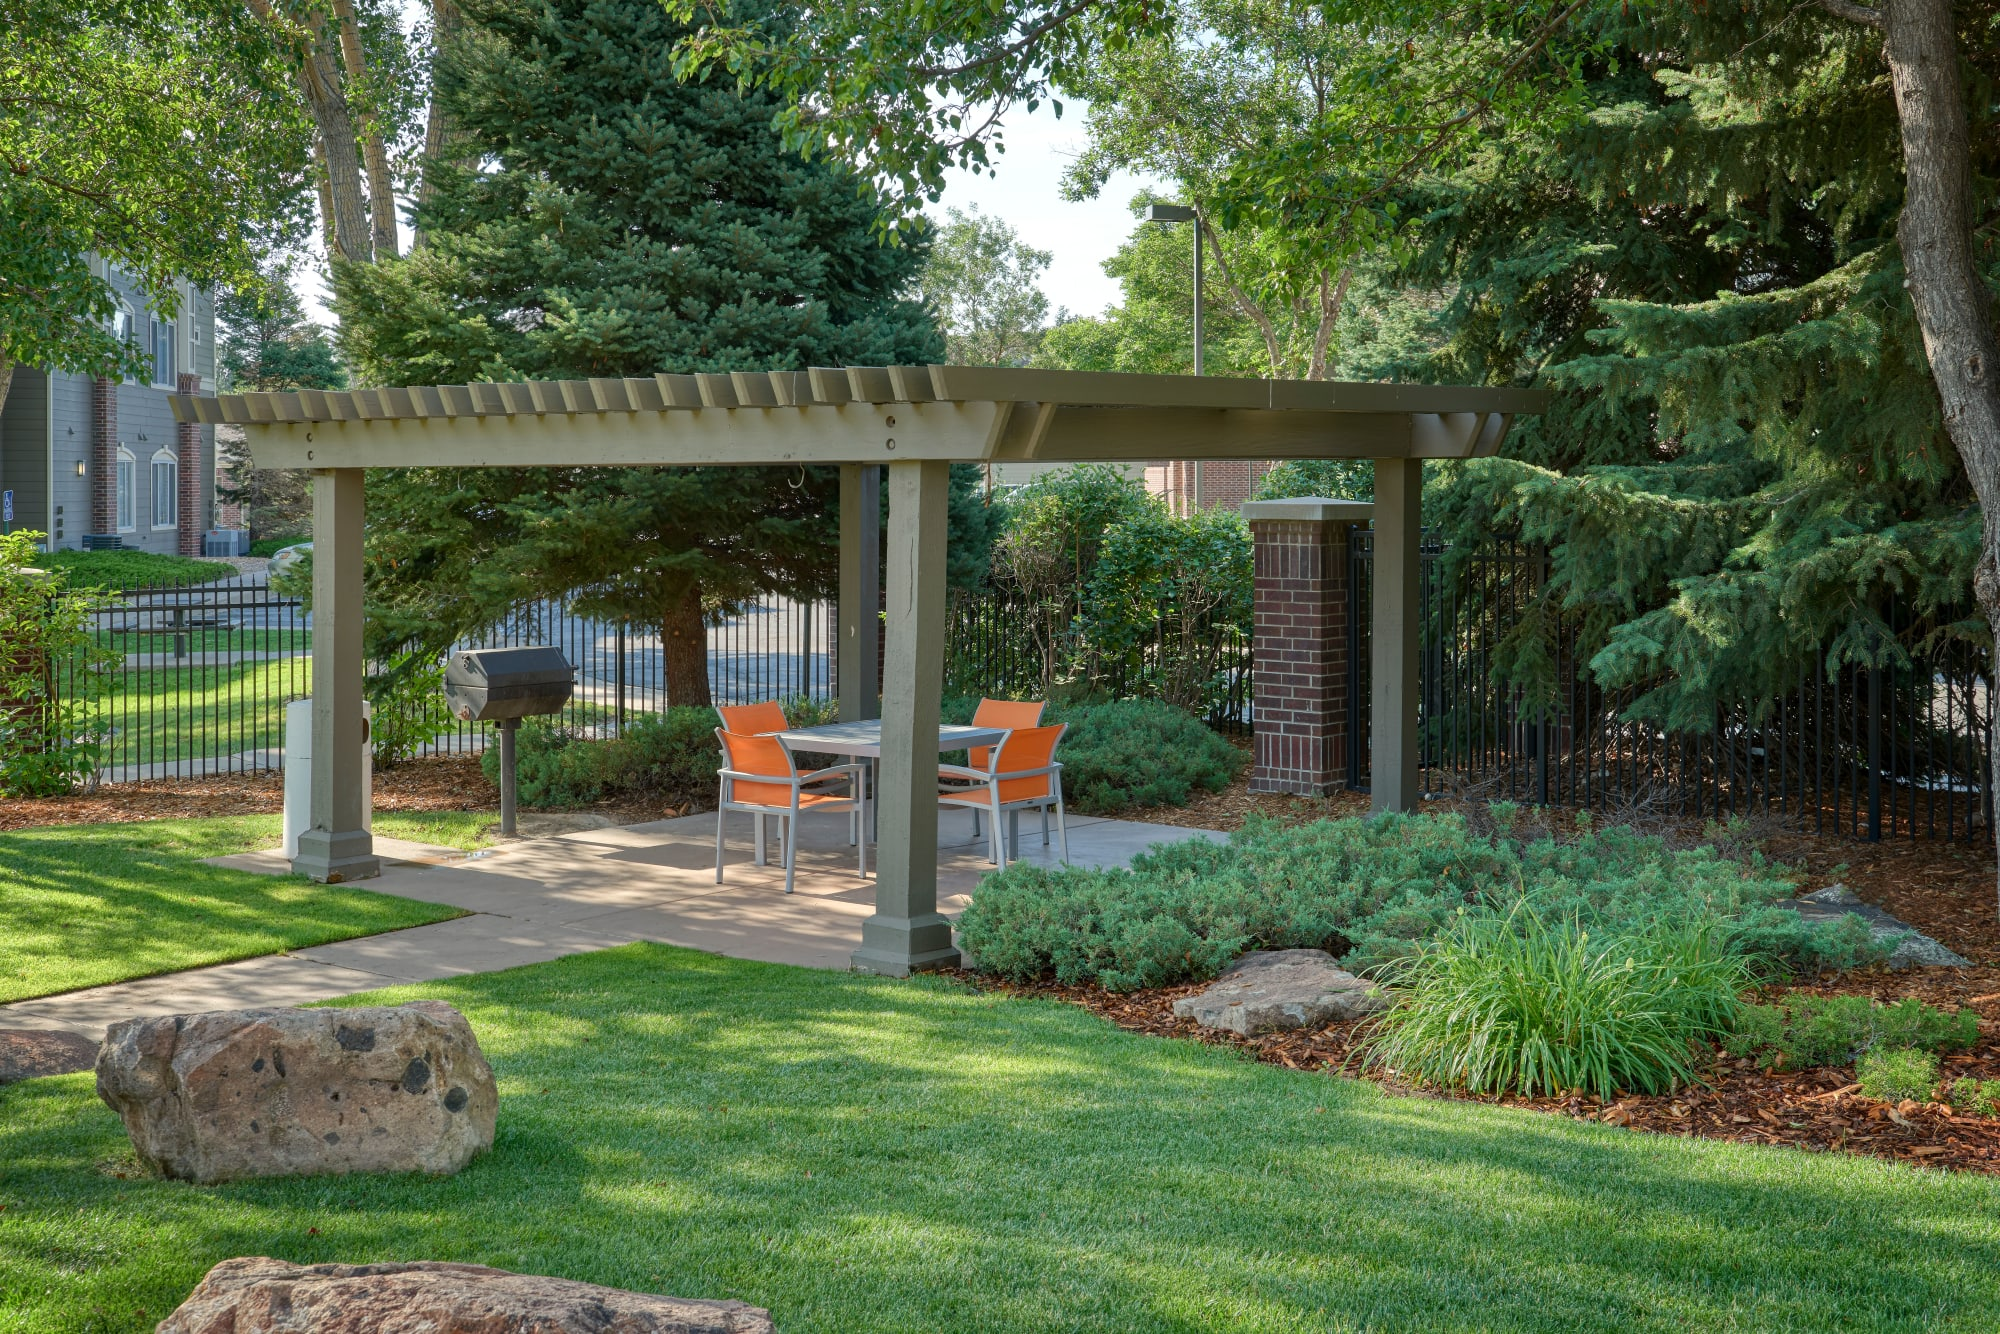 Barbecue picnic area at Legend Oaks Apartments in Aurora, Colorado